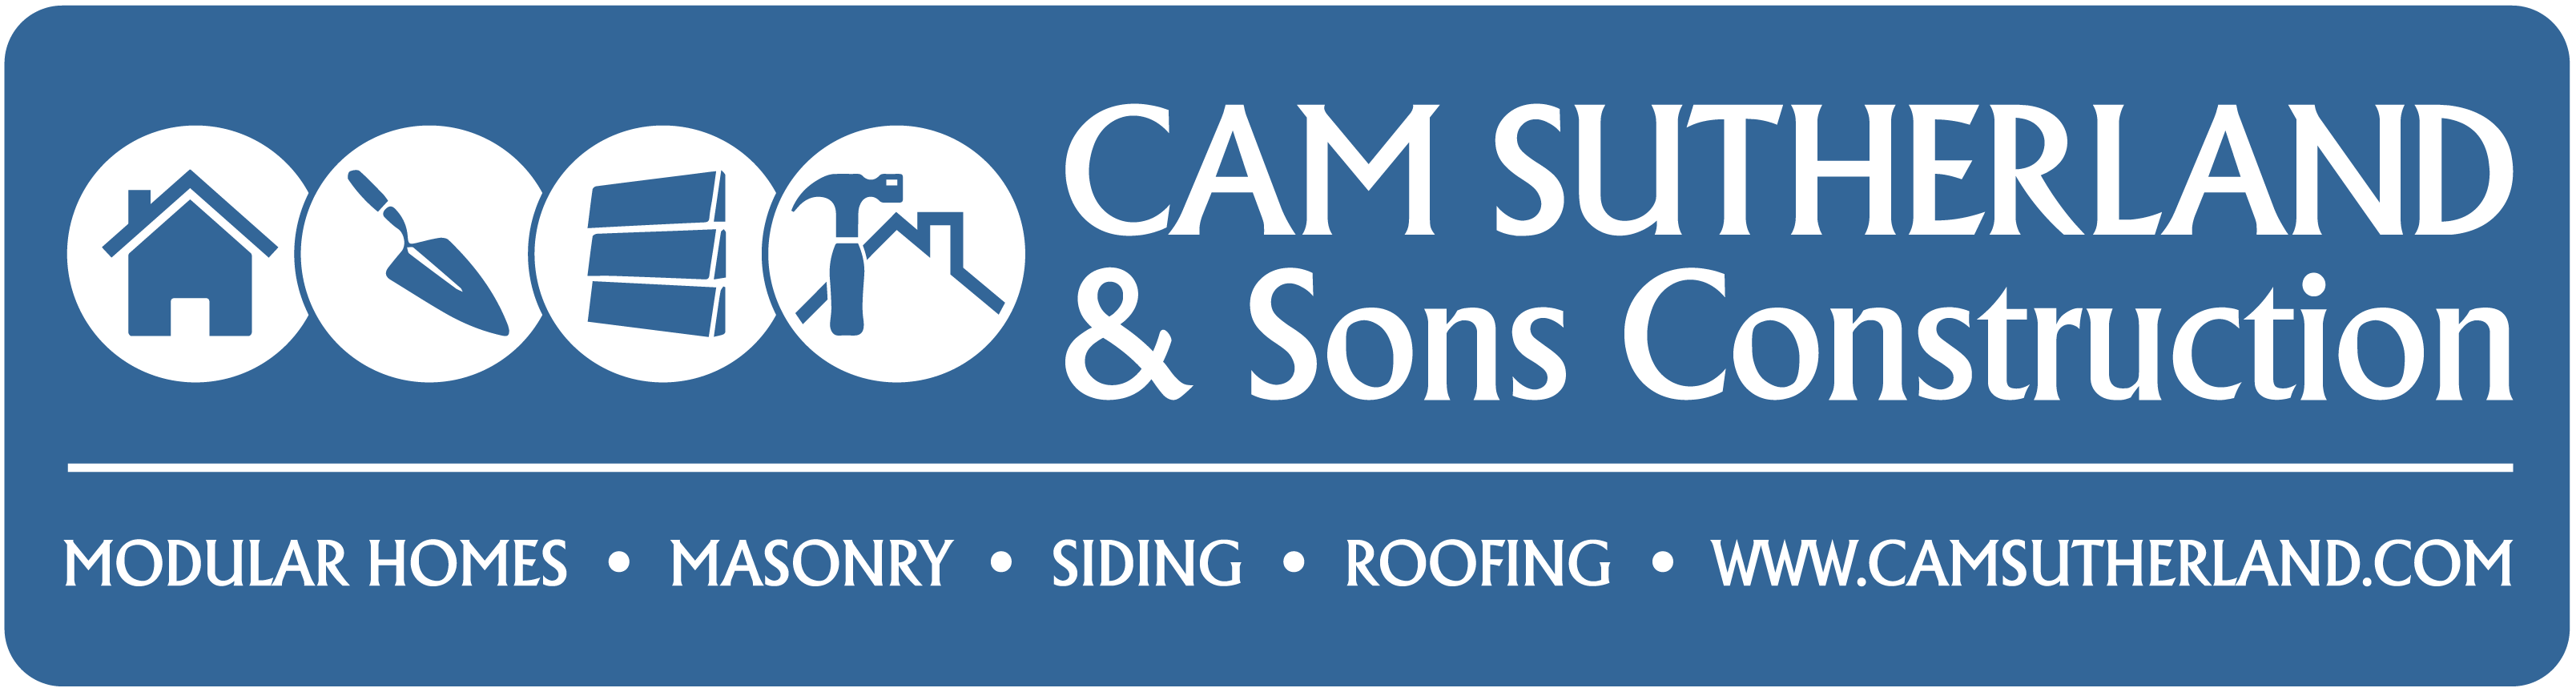 Cam Sutherland & Sons Construction